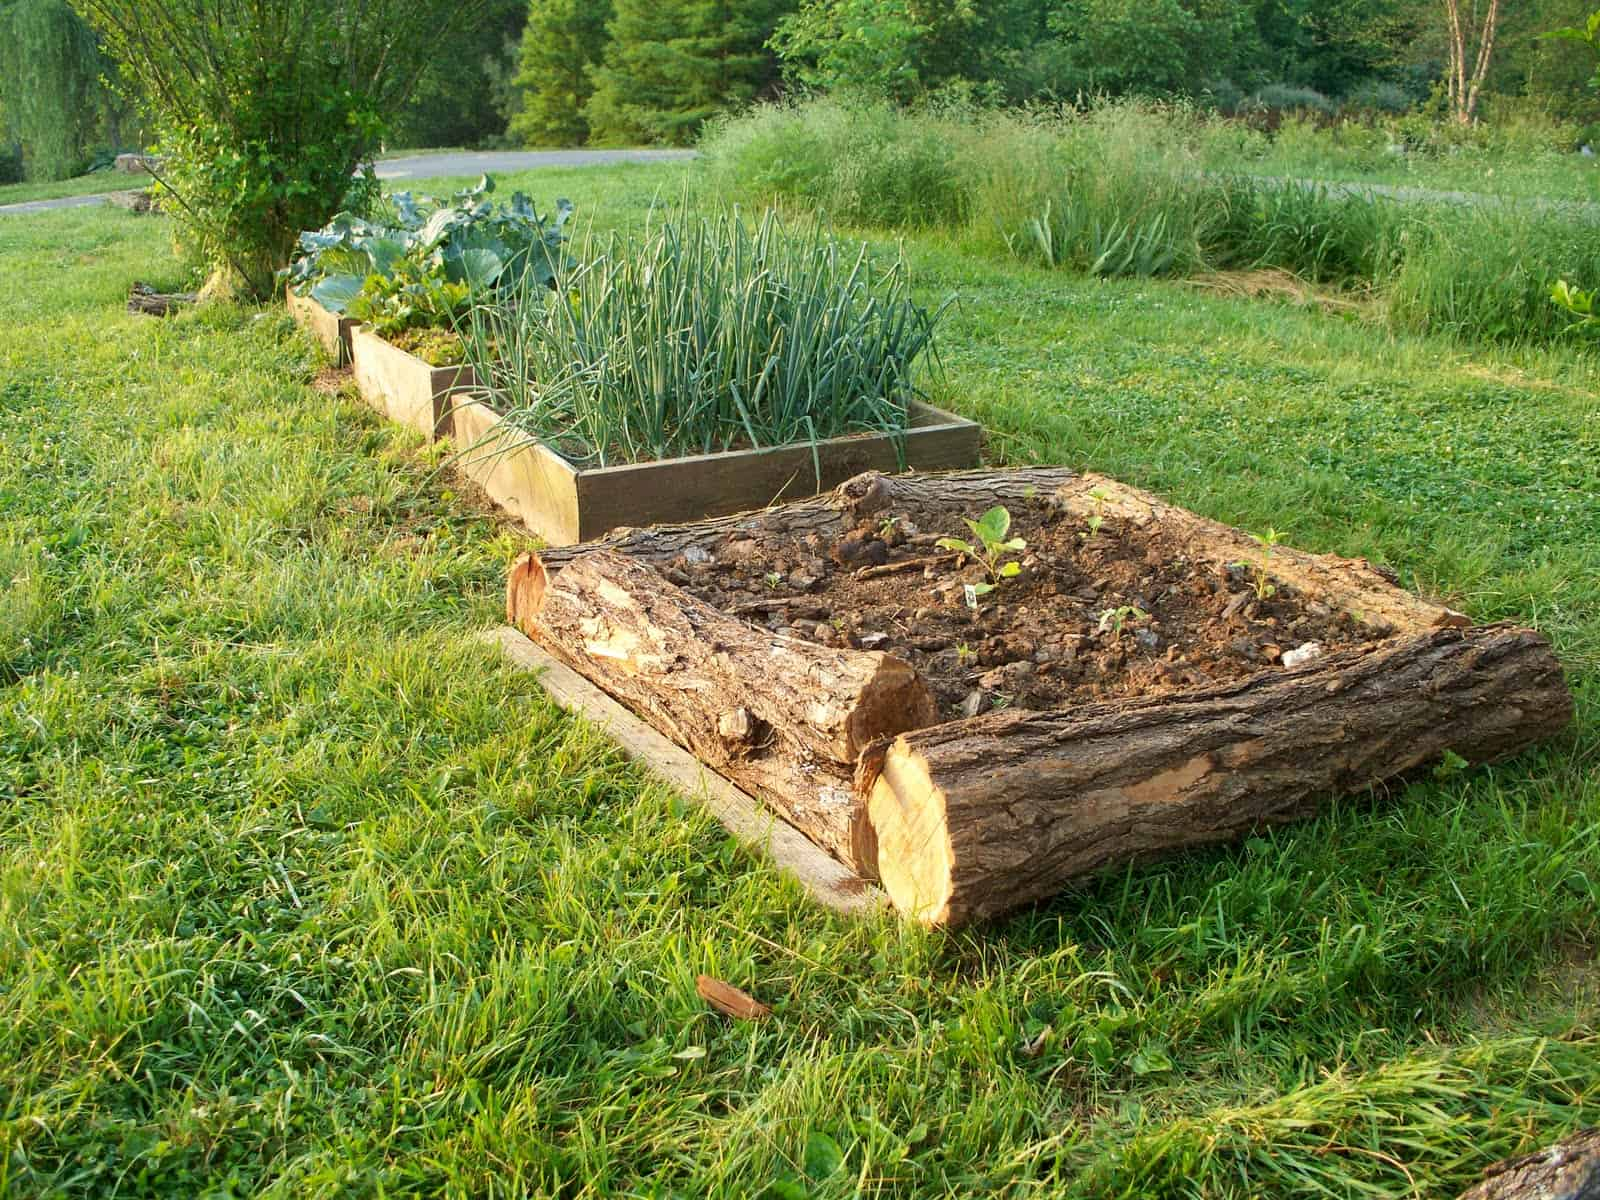 1000 images about raised garden bed examples on pinterest gardens - Planting Beds Design Ideas